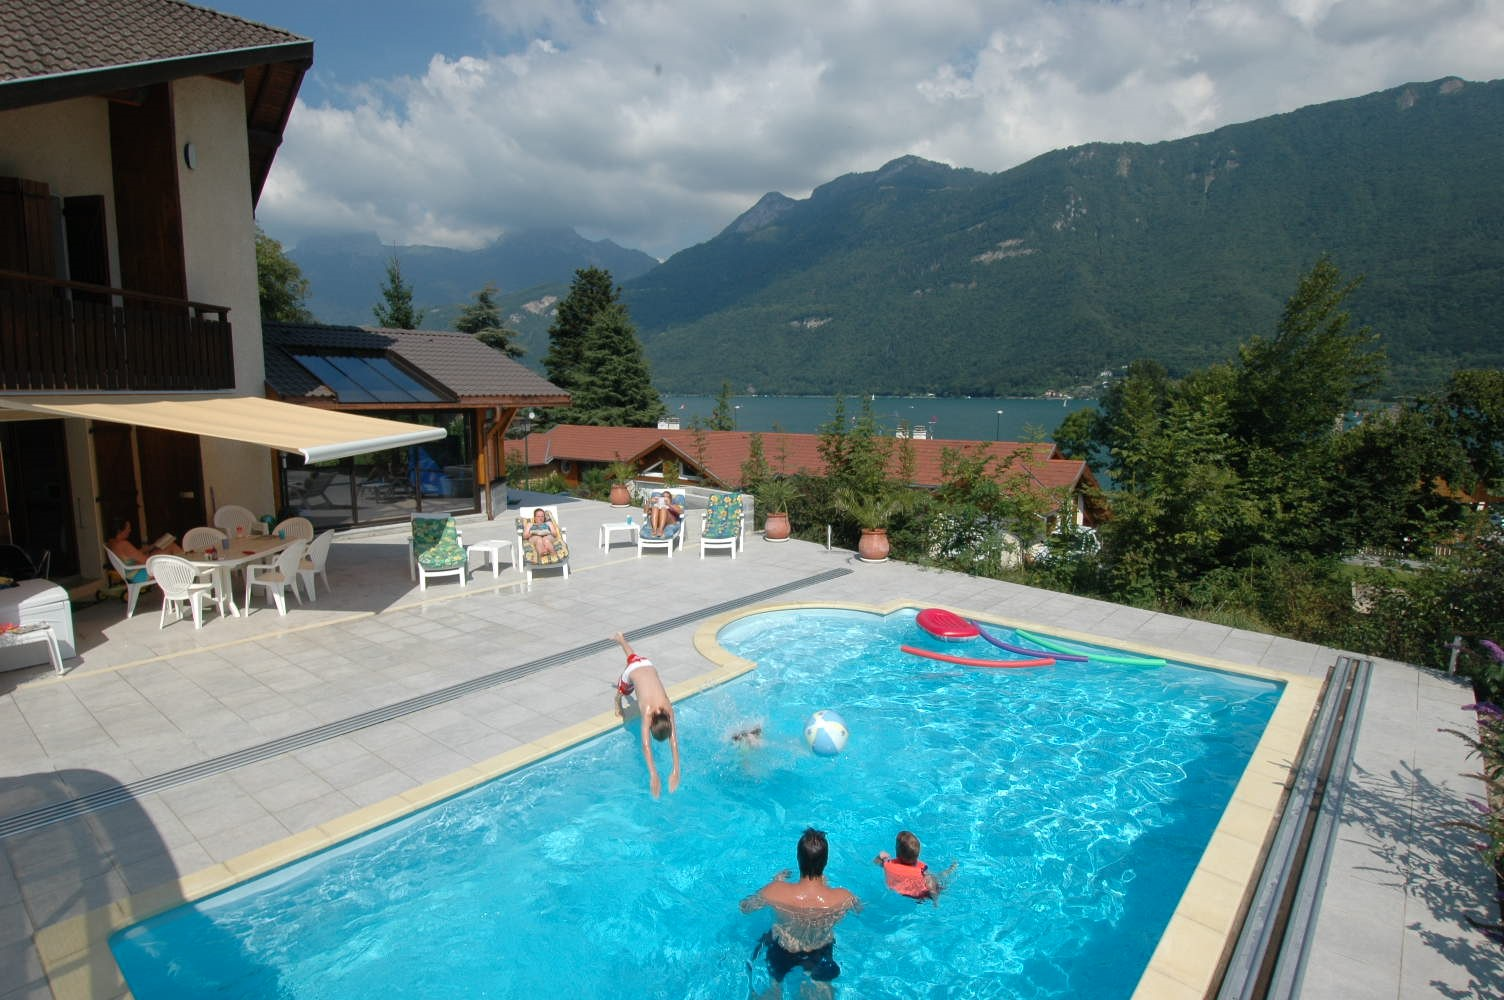 Villa with pool villa lake annecy annecy villa rental for Lake annecy hotels swimming pool